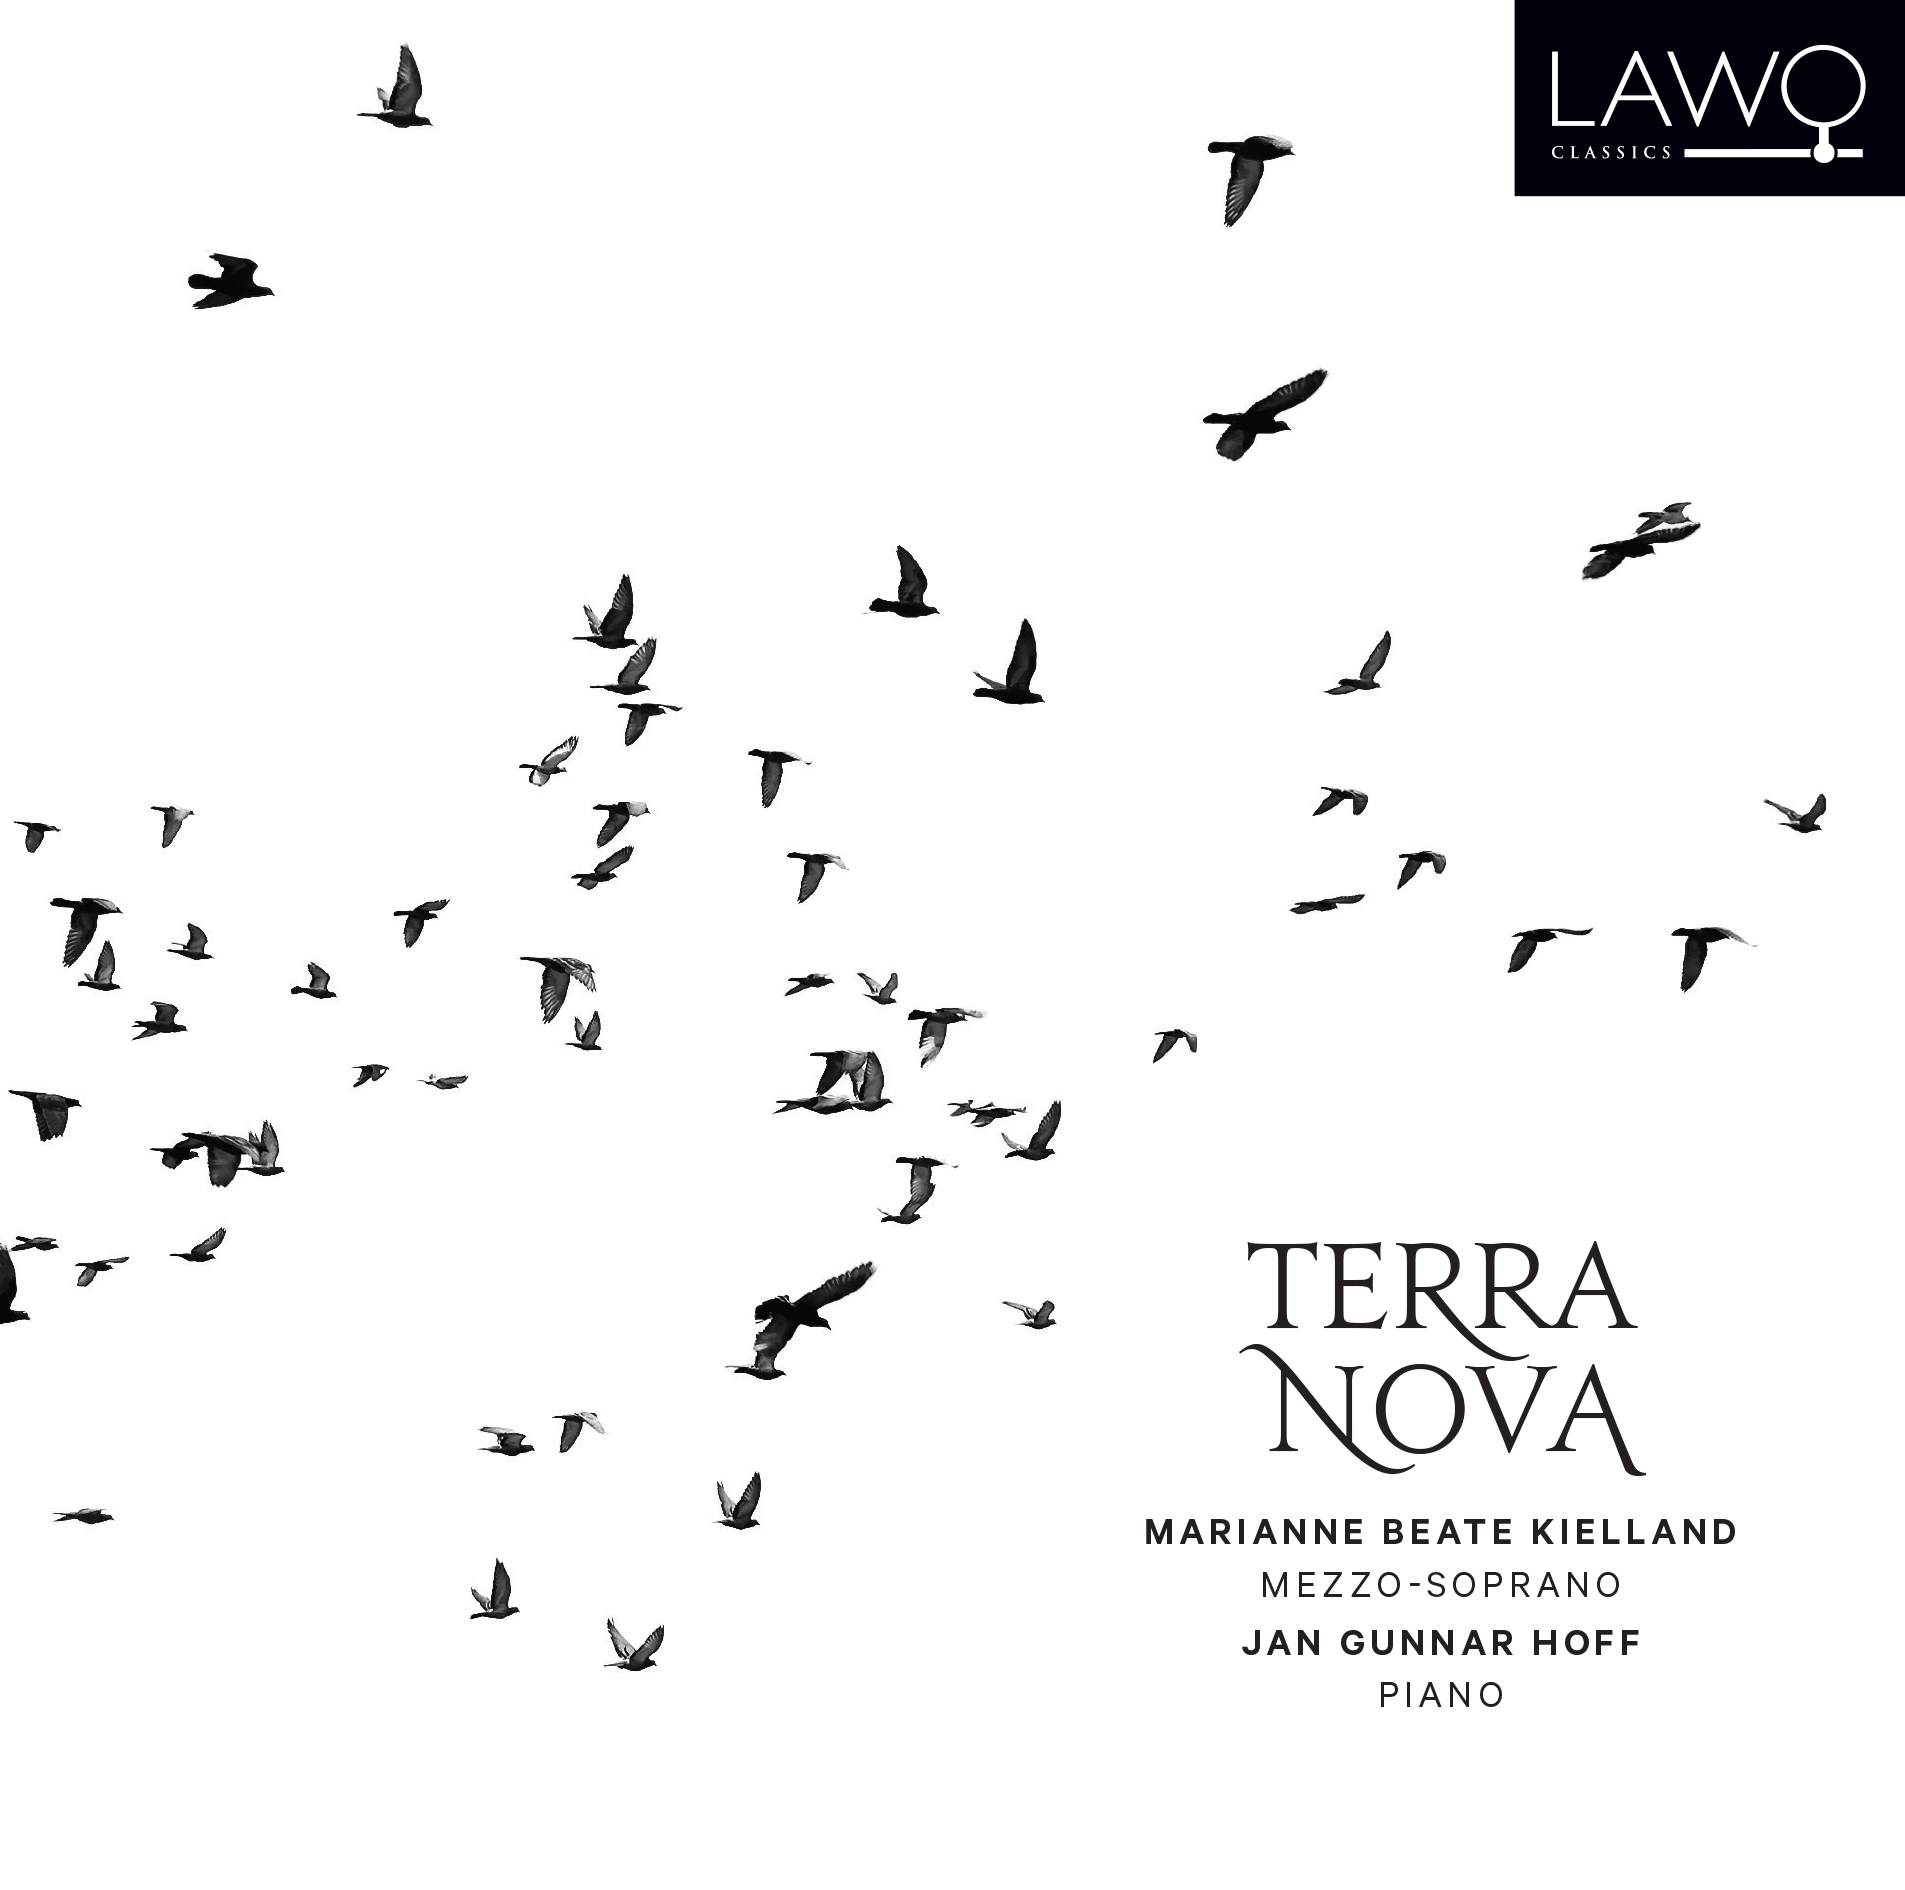 Terra Nova – music for piano and voice (scores) – Jan Gunnar